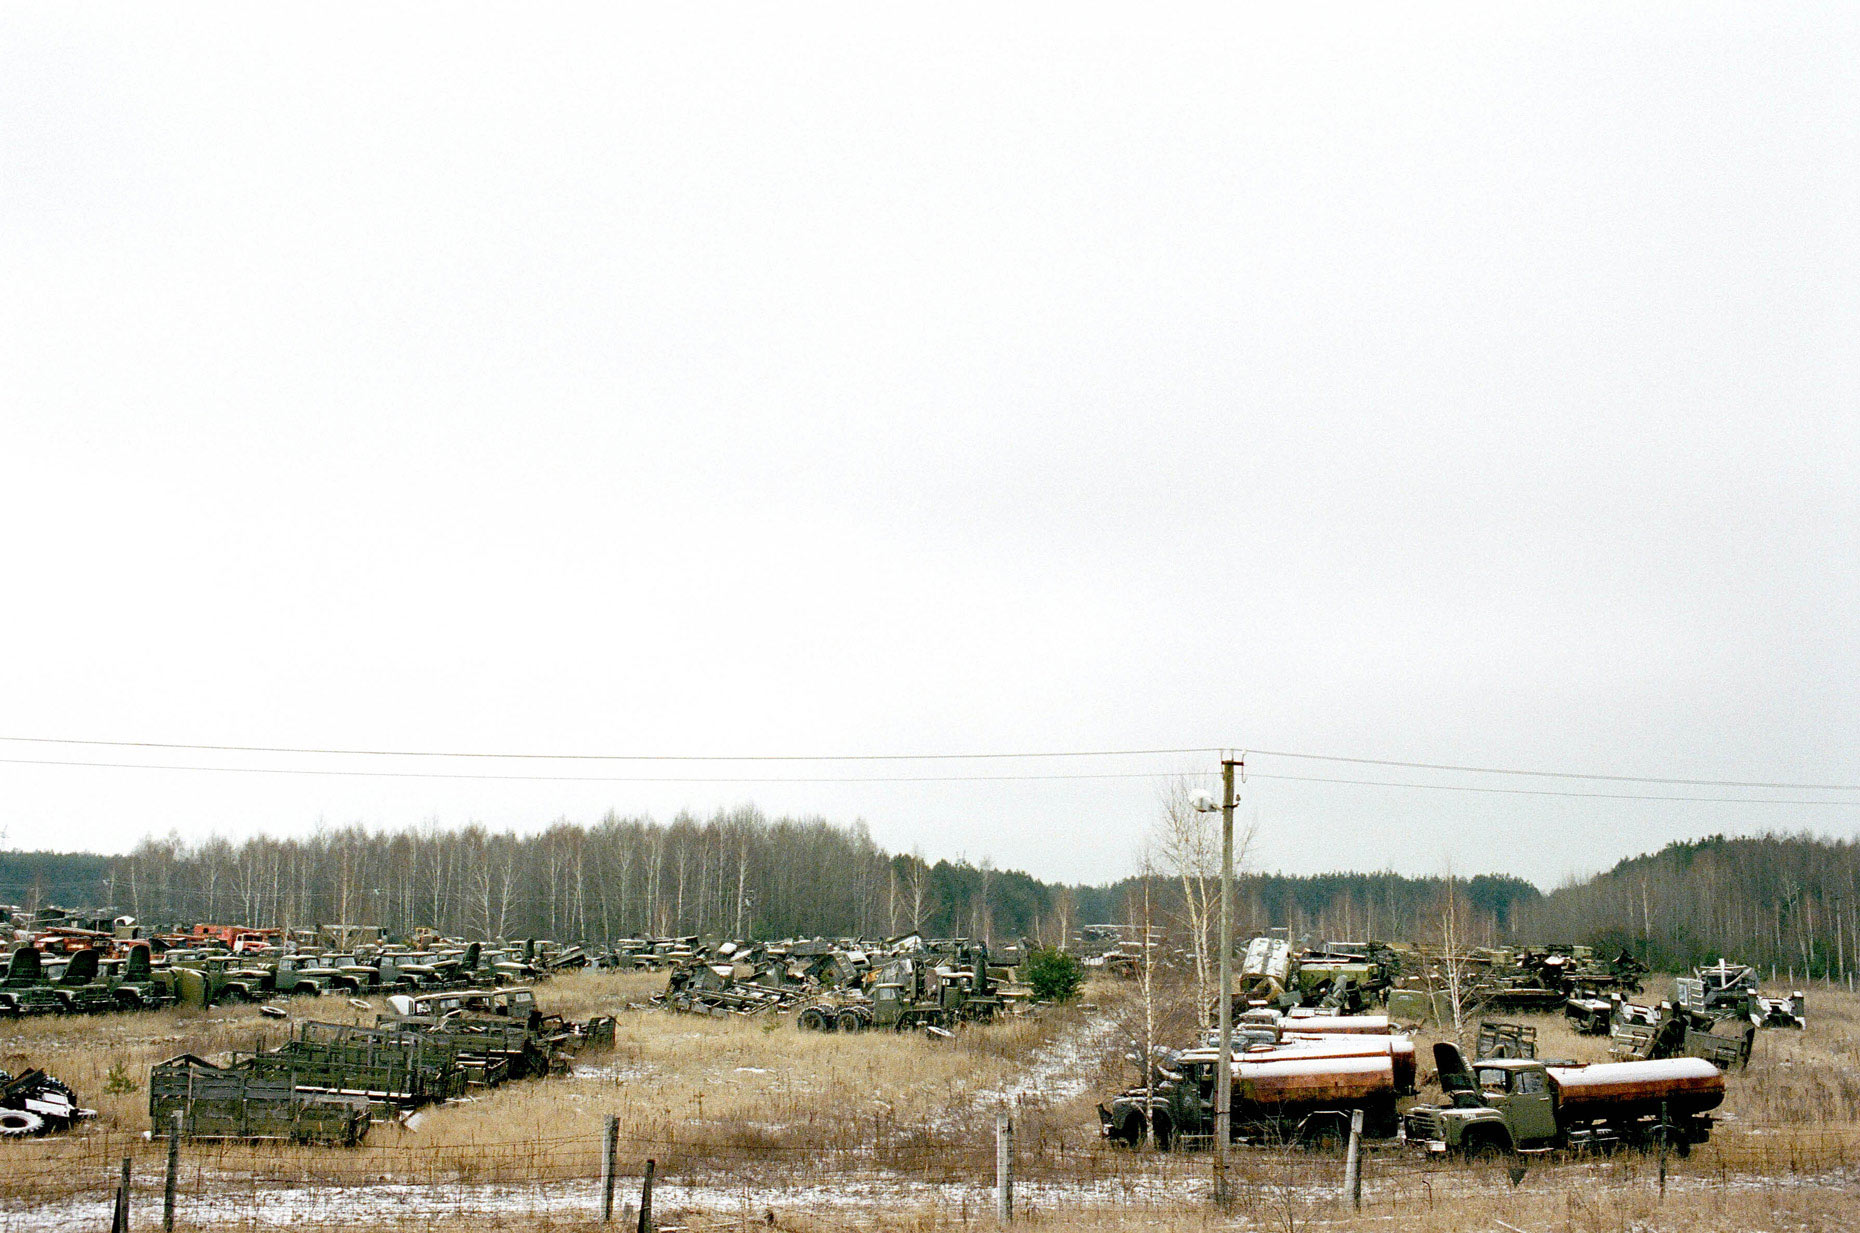 Chernobyl, contaminated vehicle graveyard near the Chernobyl nuclear power station. Ukraine.